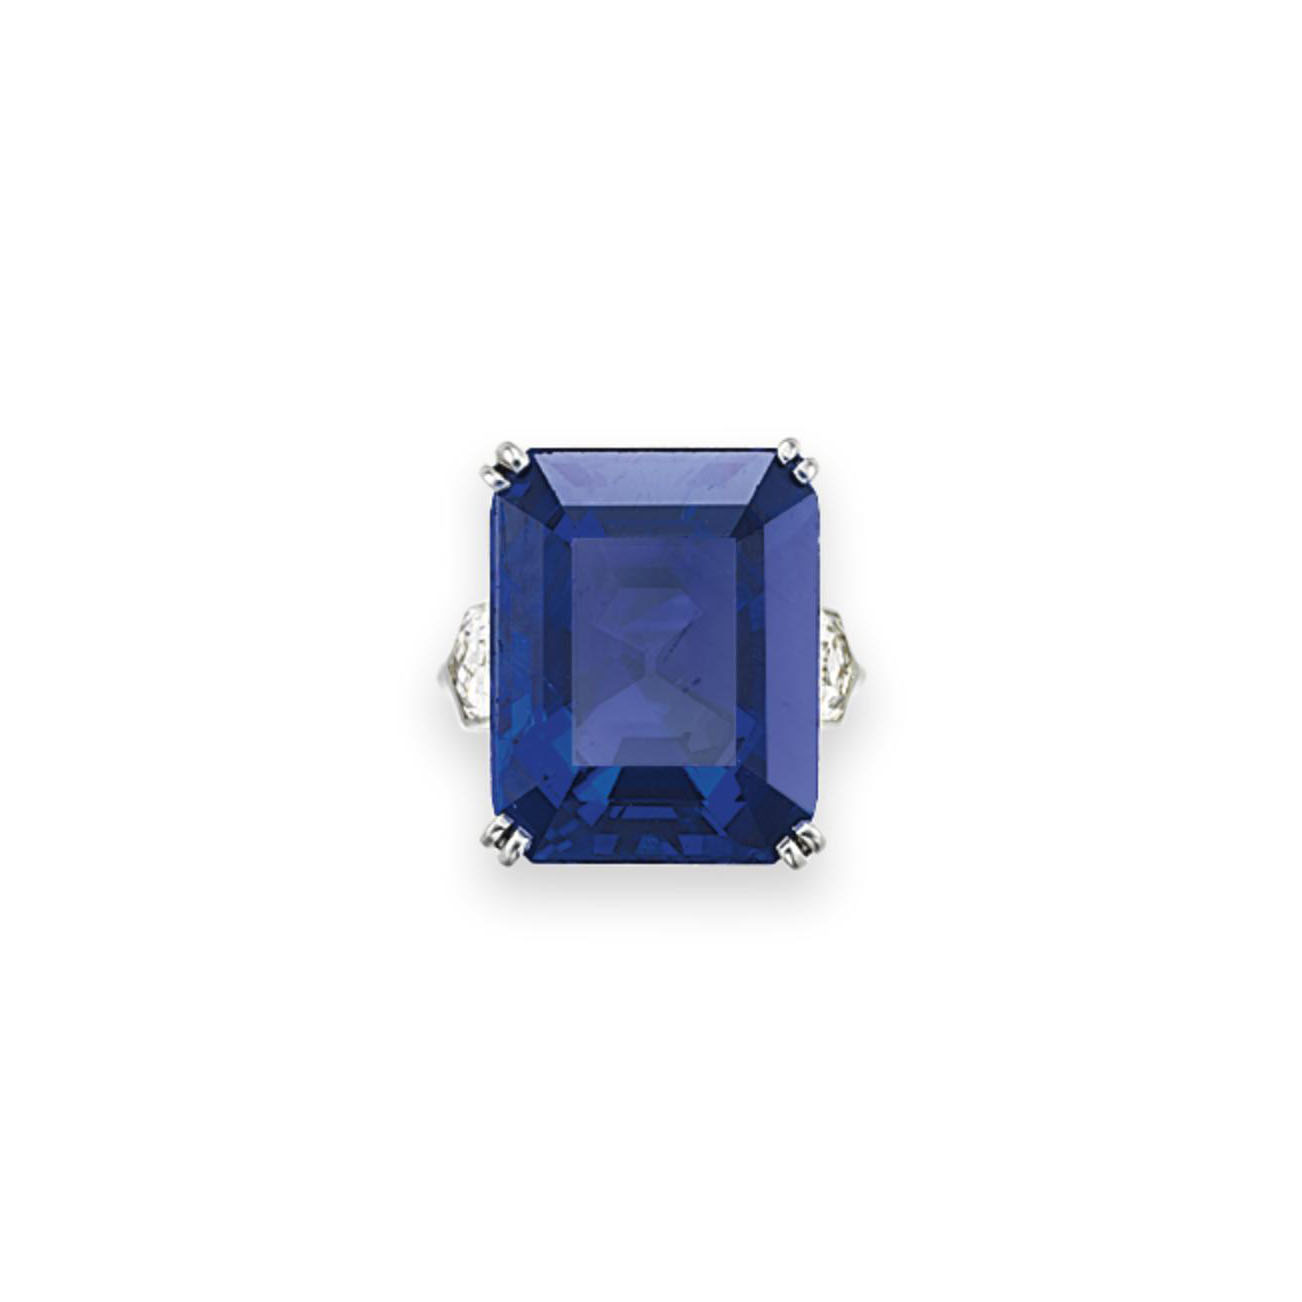 eleuteri sapphire ring burma exceptional img burmese diamond natural collections